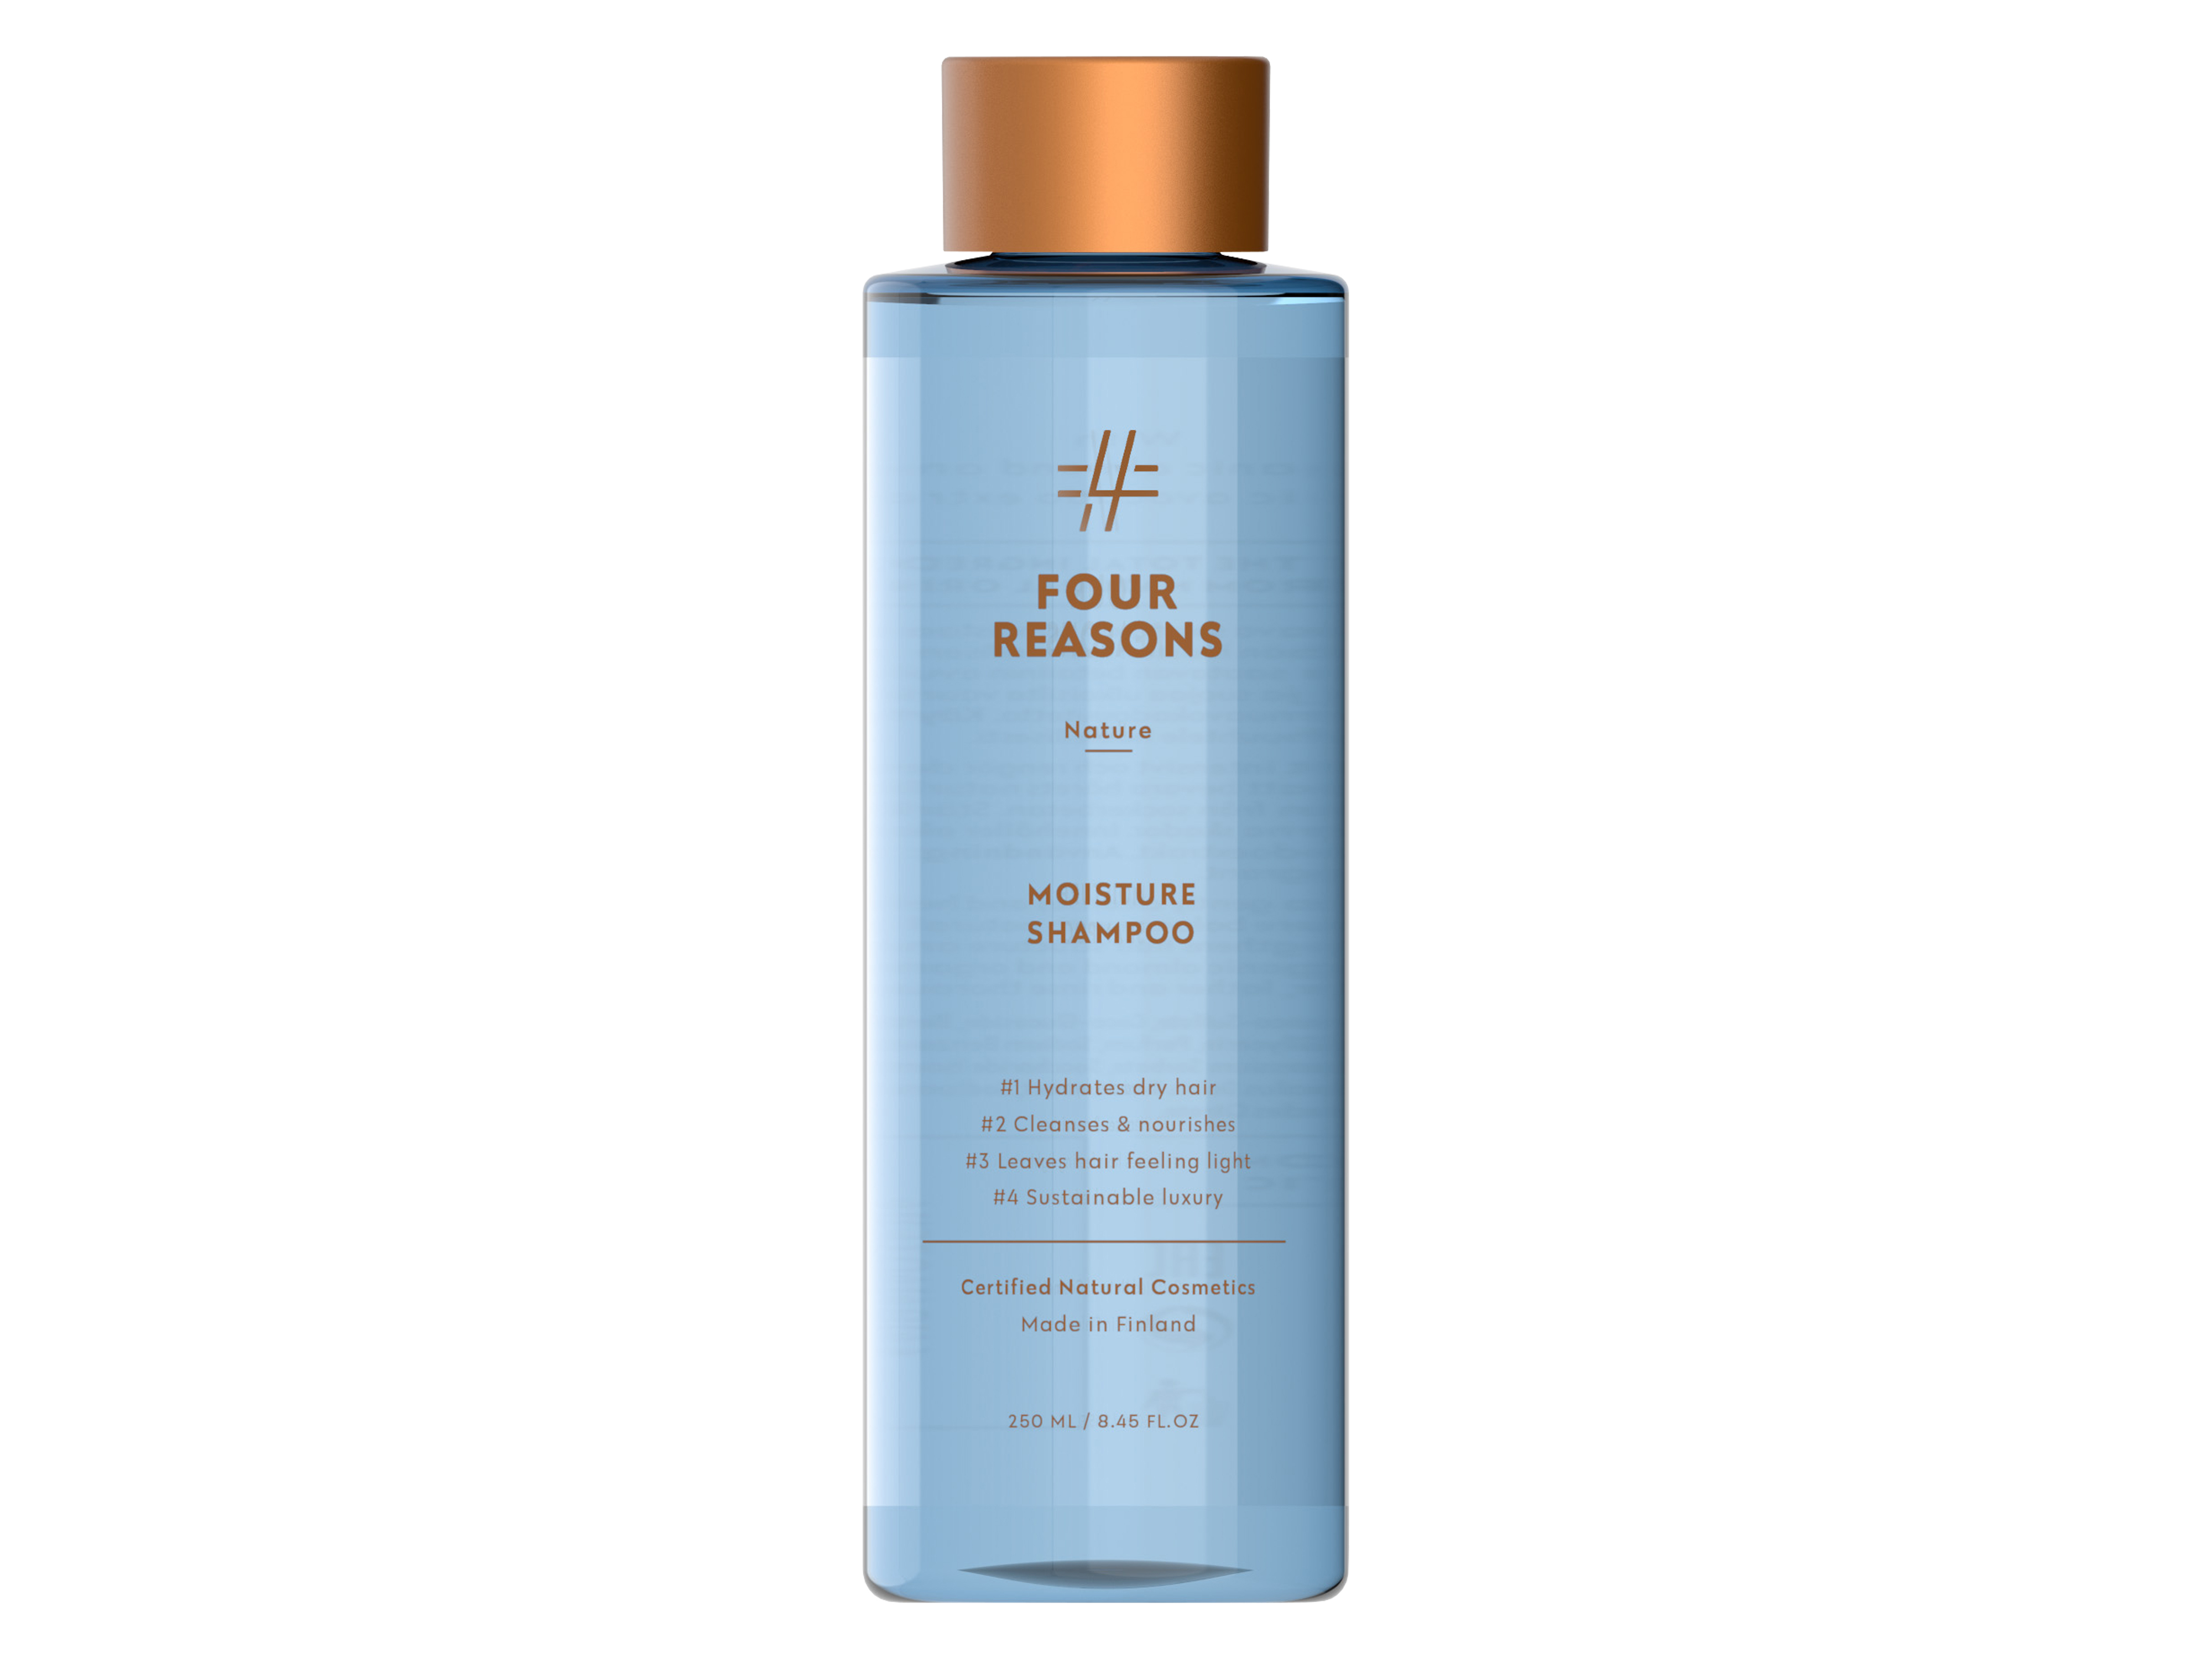 Four Reasons Nature Moisture Shampoo, 250 ml